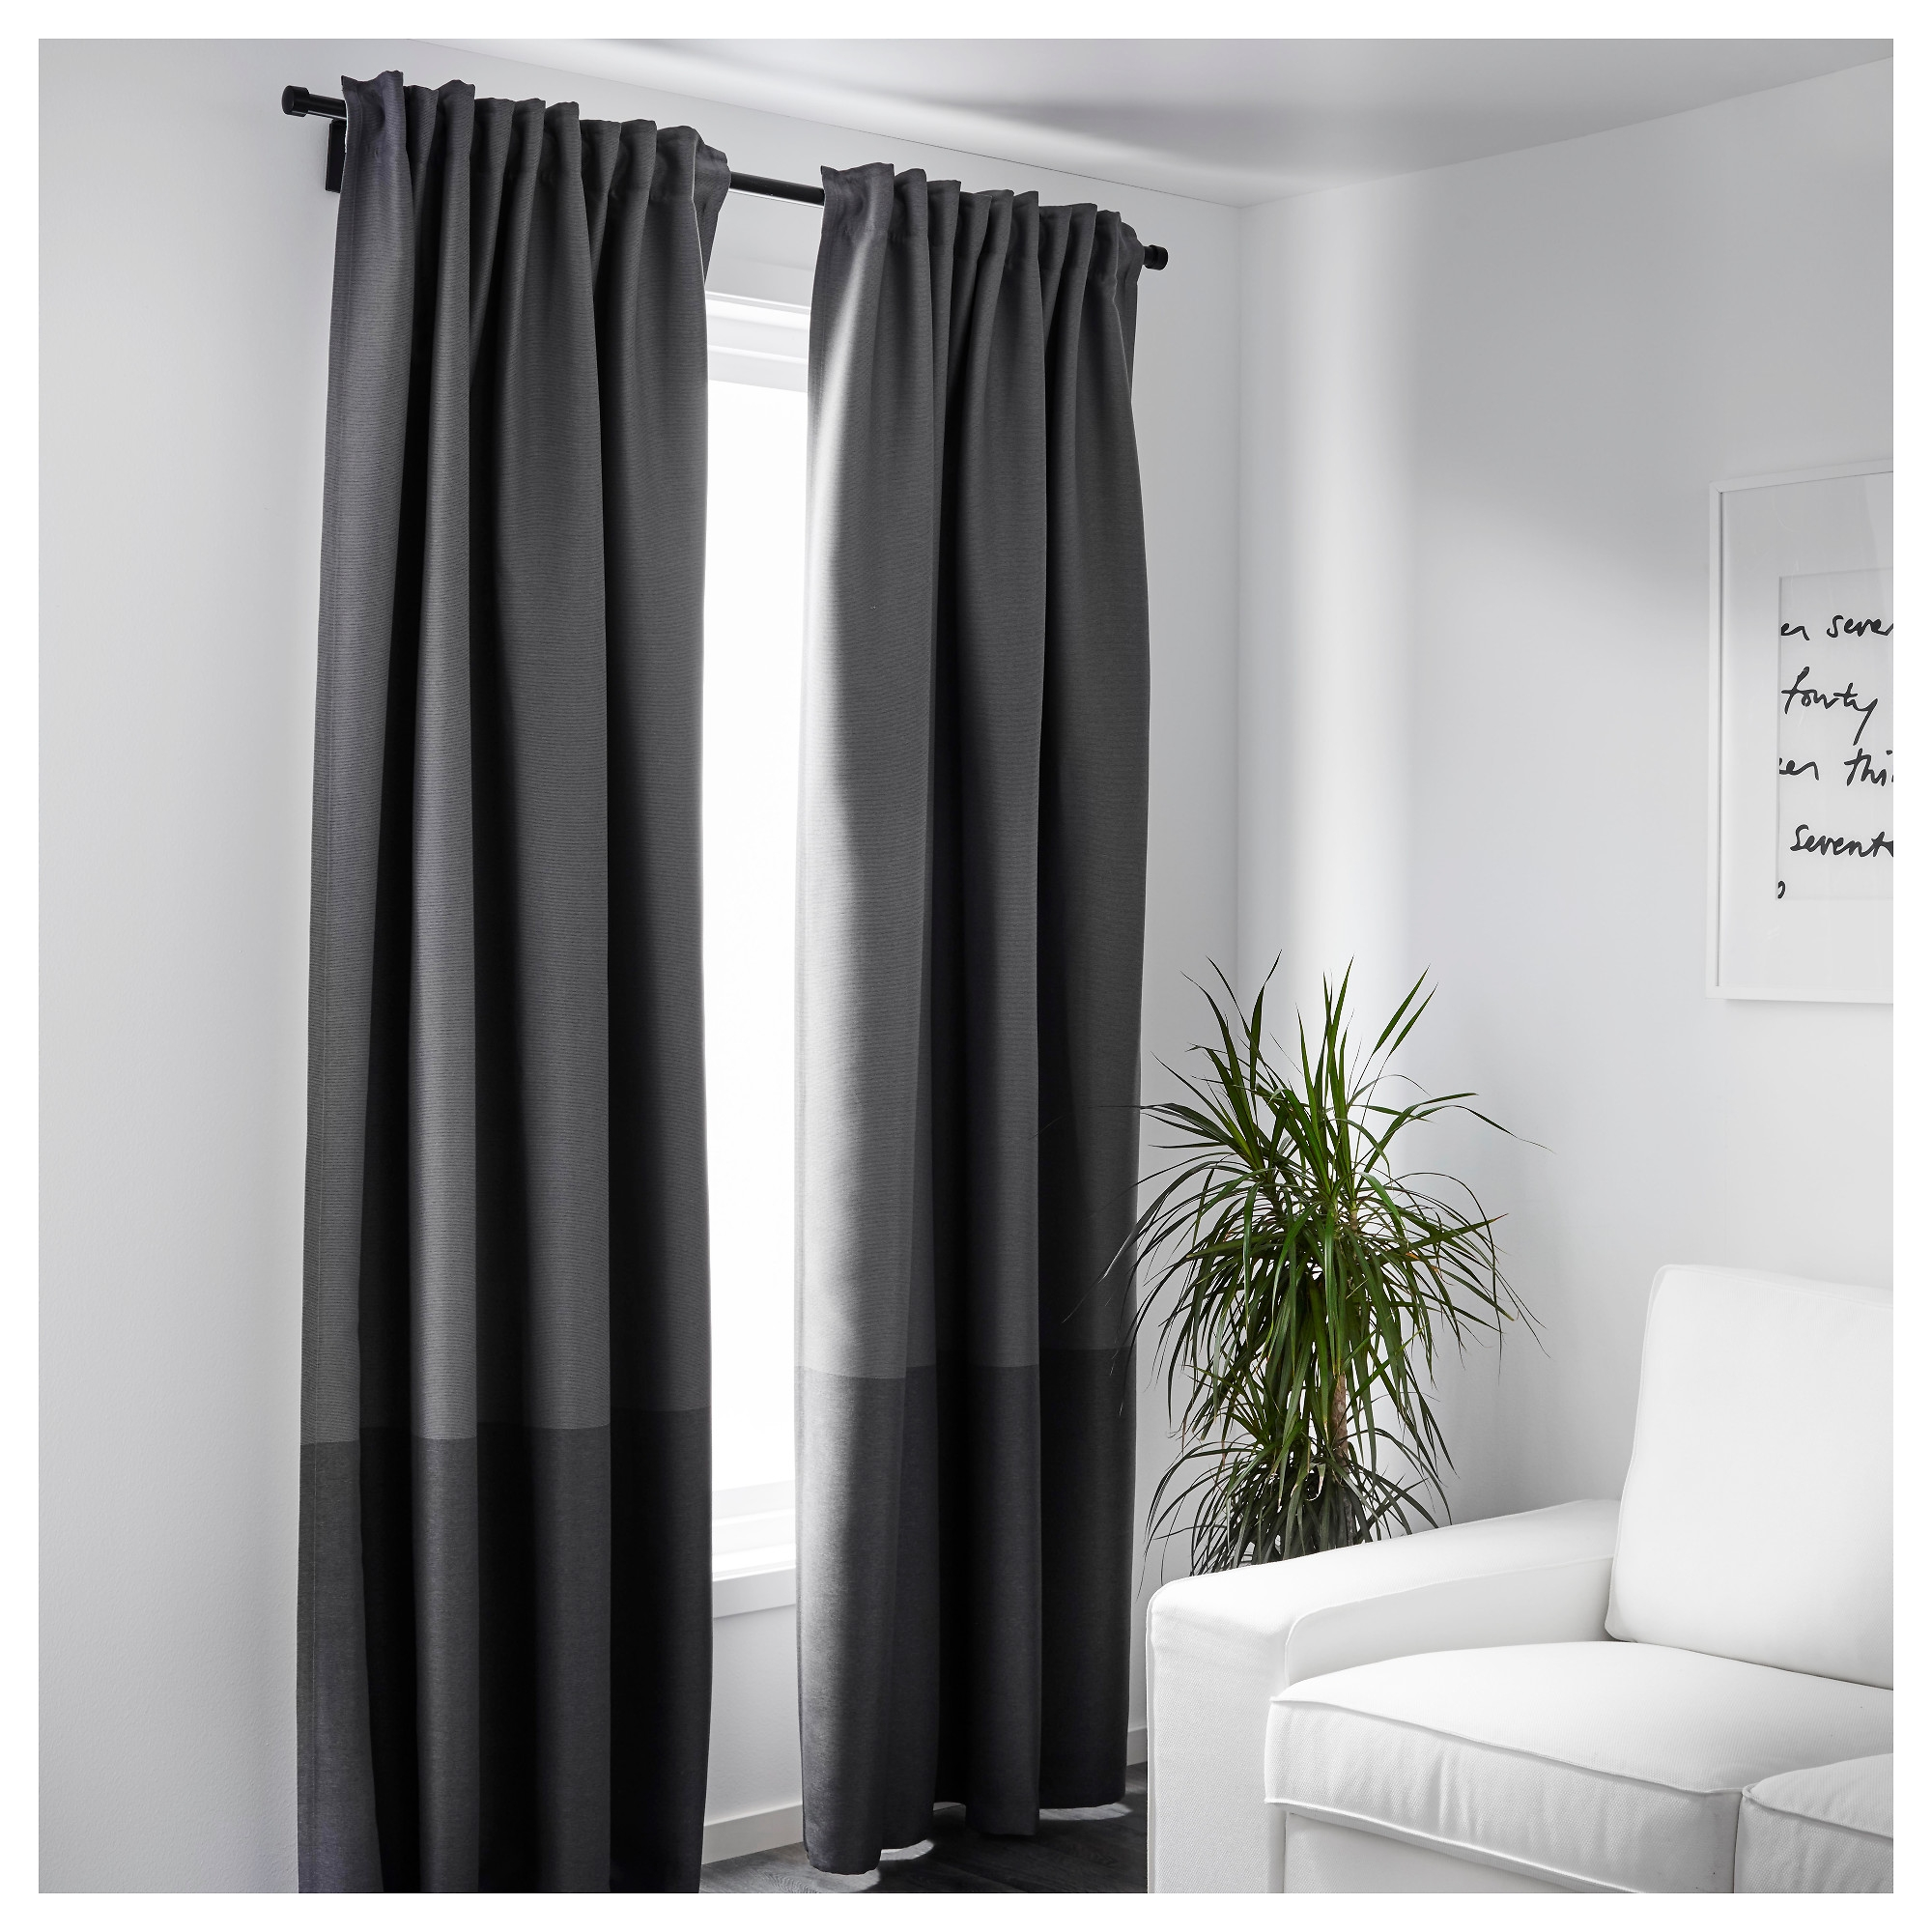 Marjun Blackout Curtains 1 Pair Ikea Pertaining To Thick Grey Curtains (Image 10 of 15)